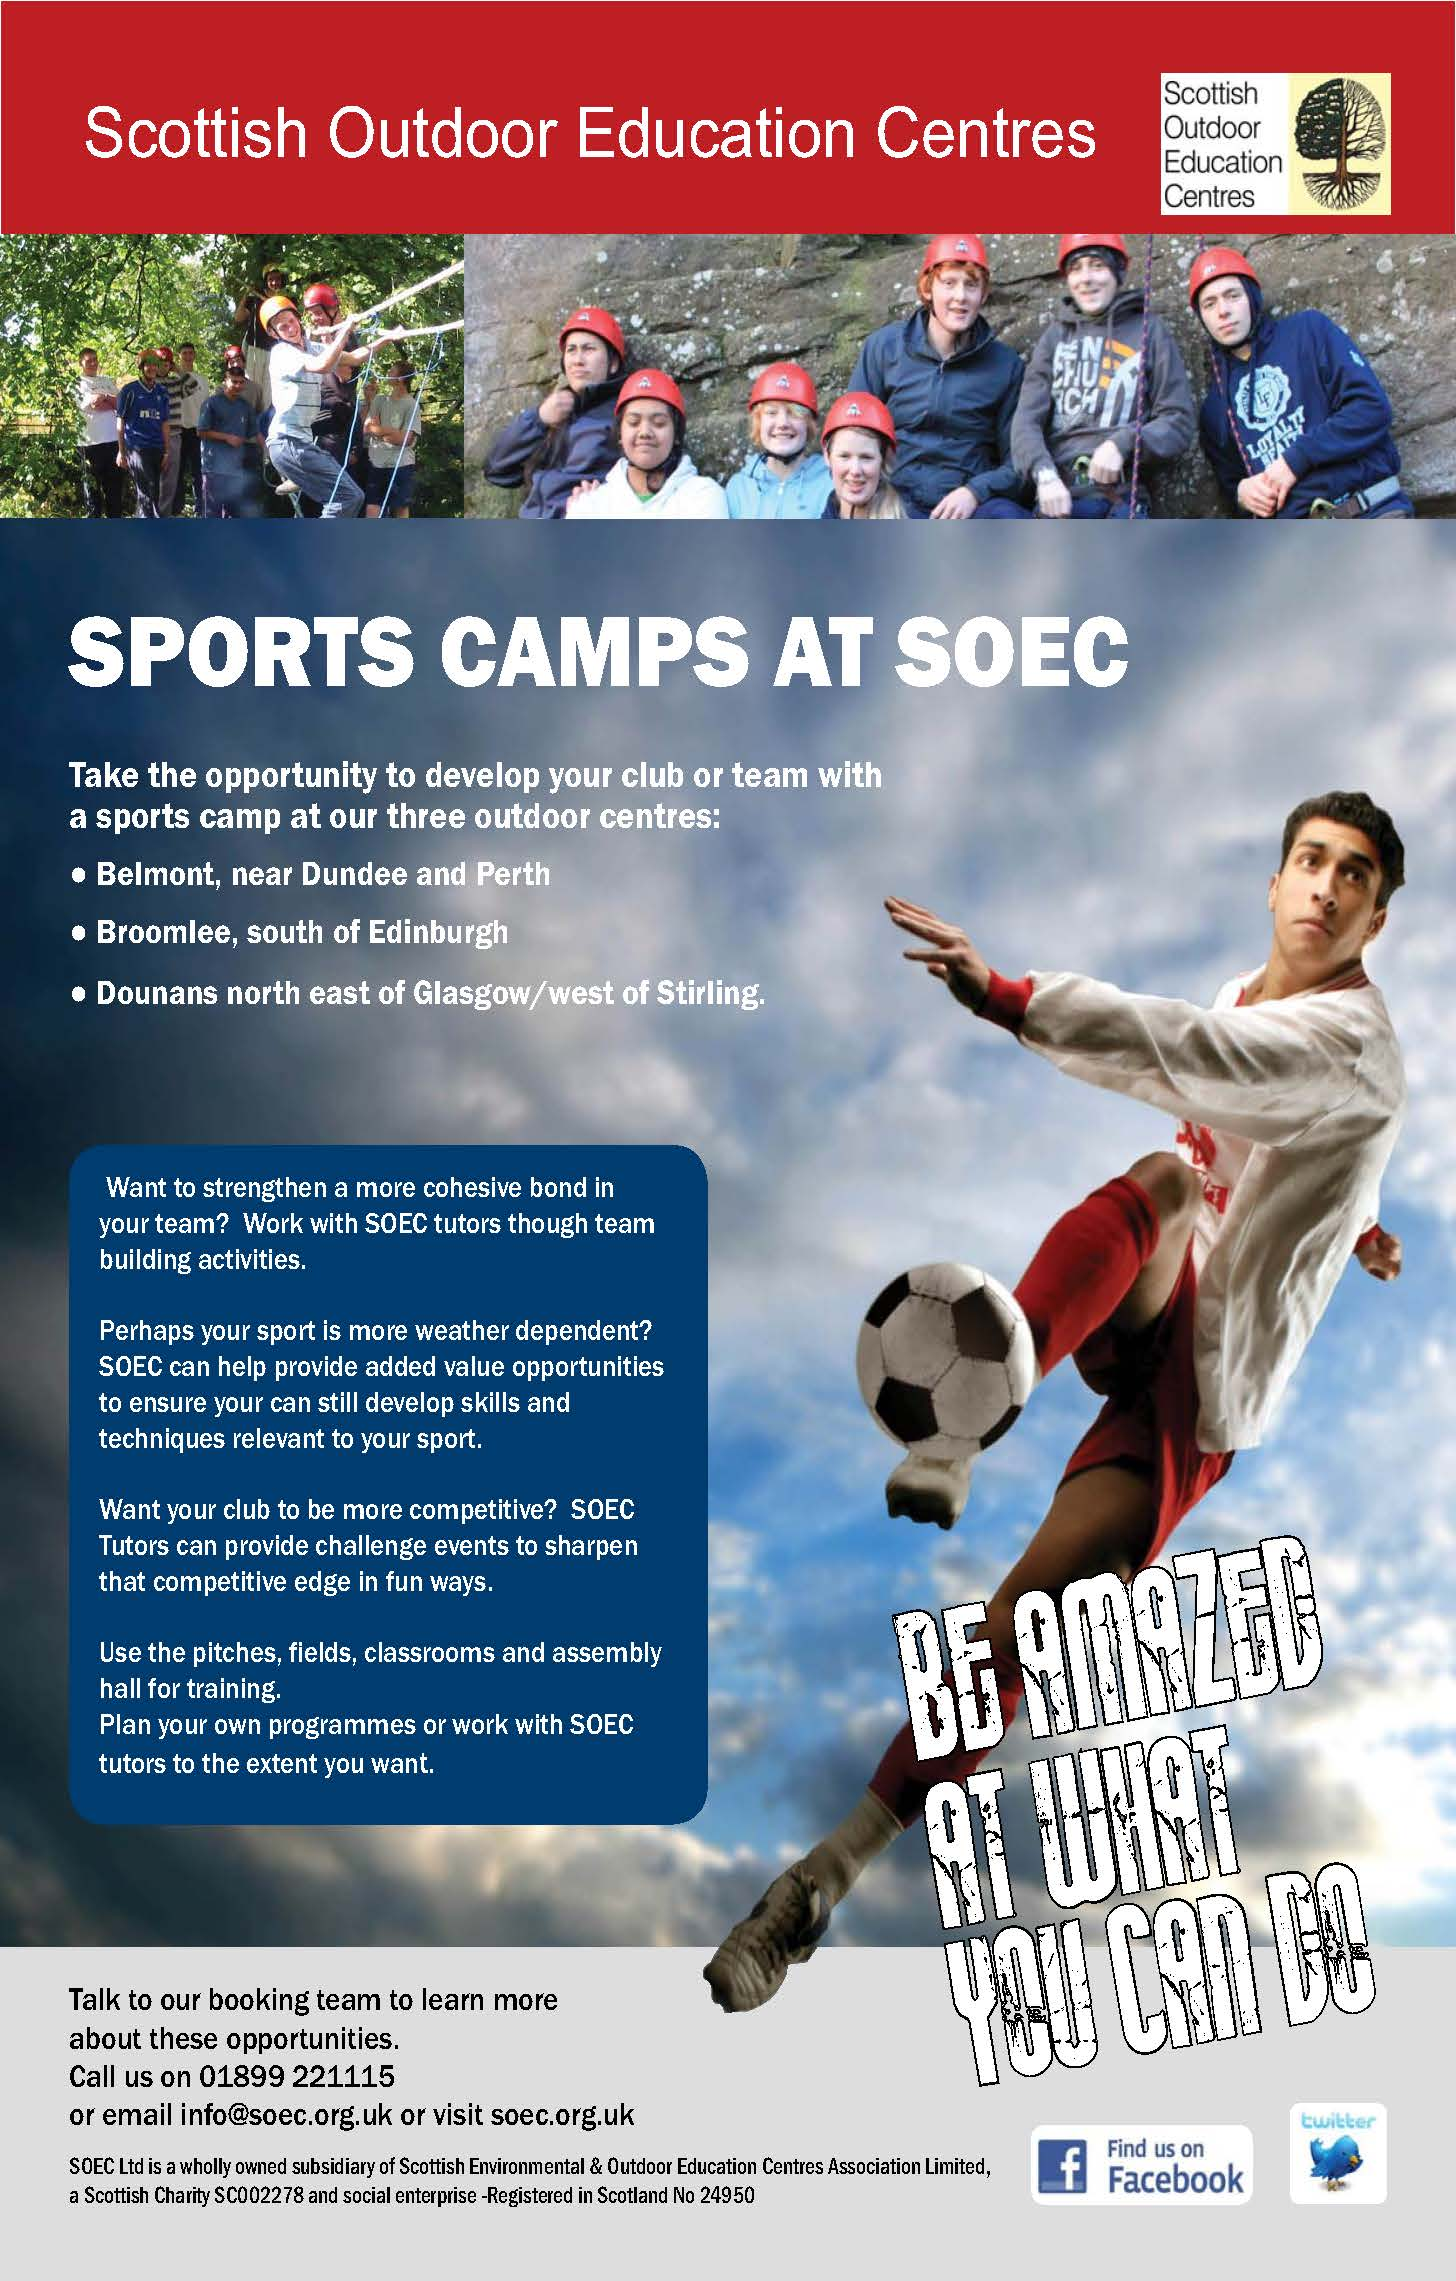 Scottish Outdoor Education Centres | Sport